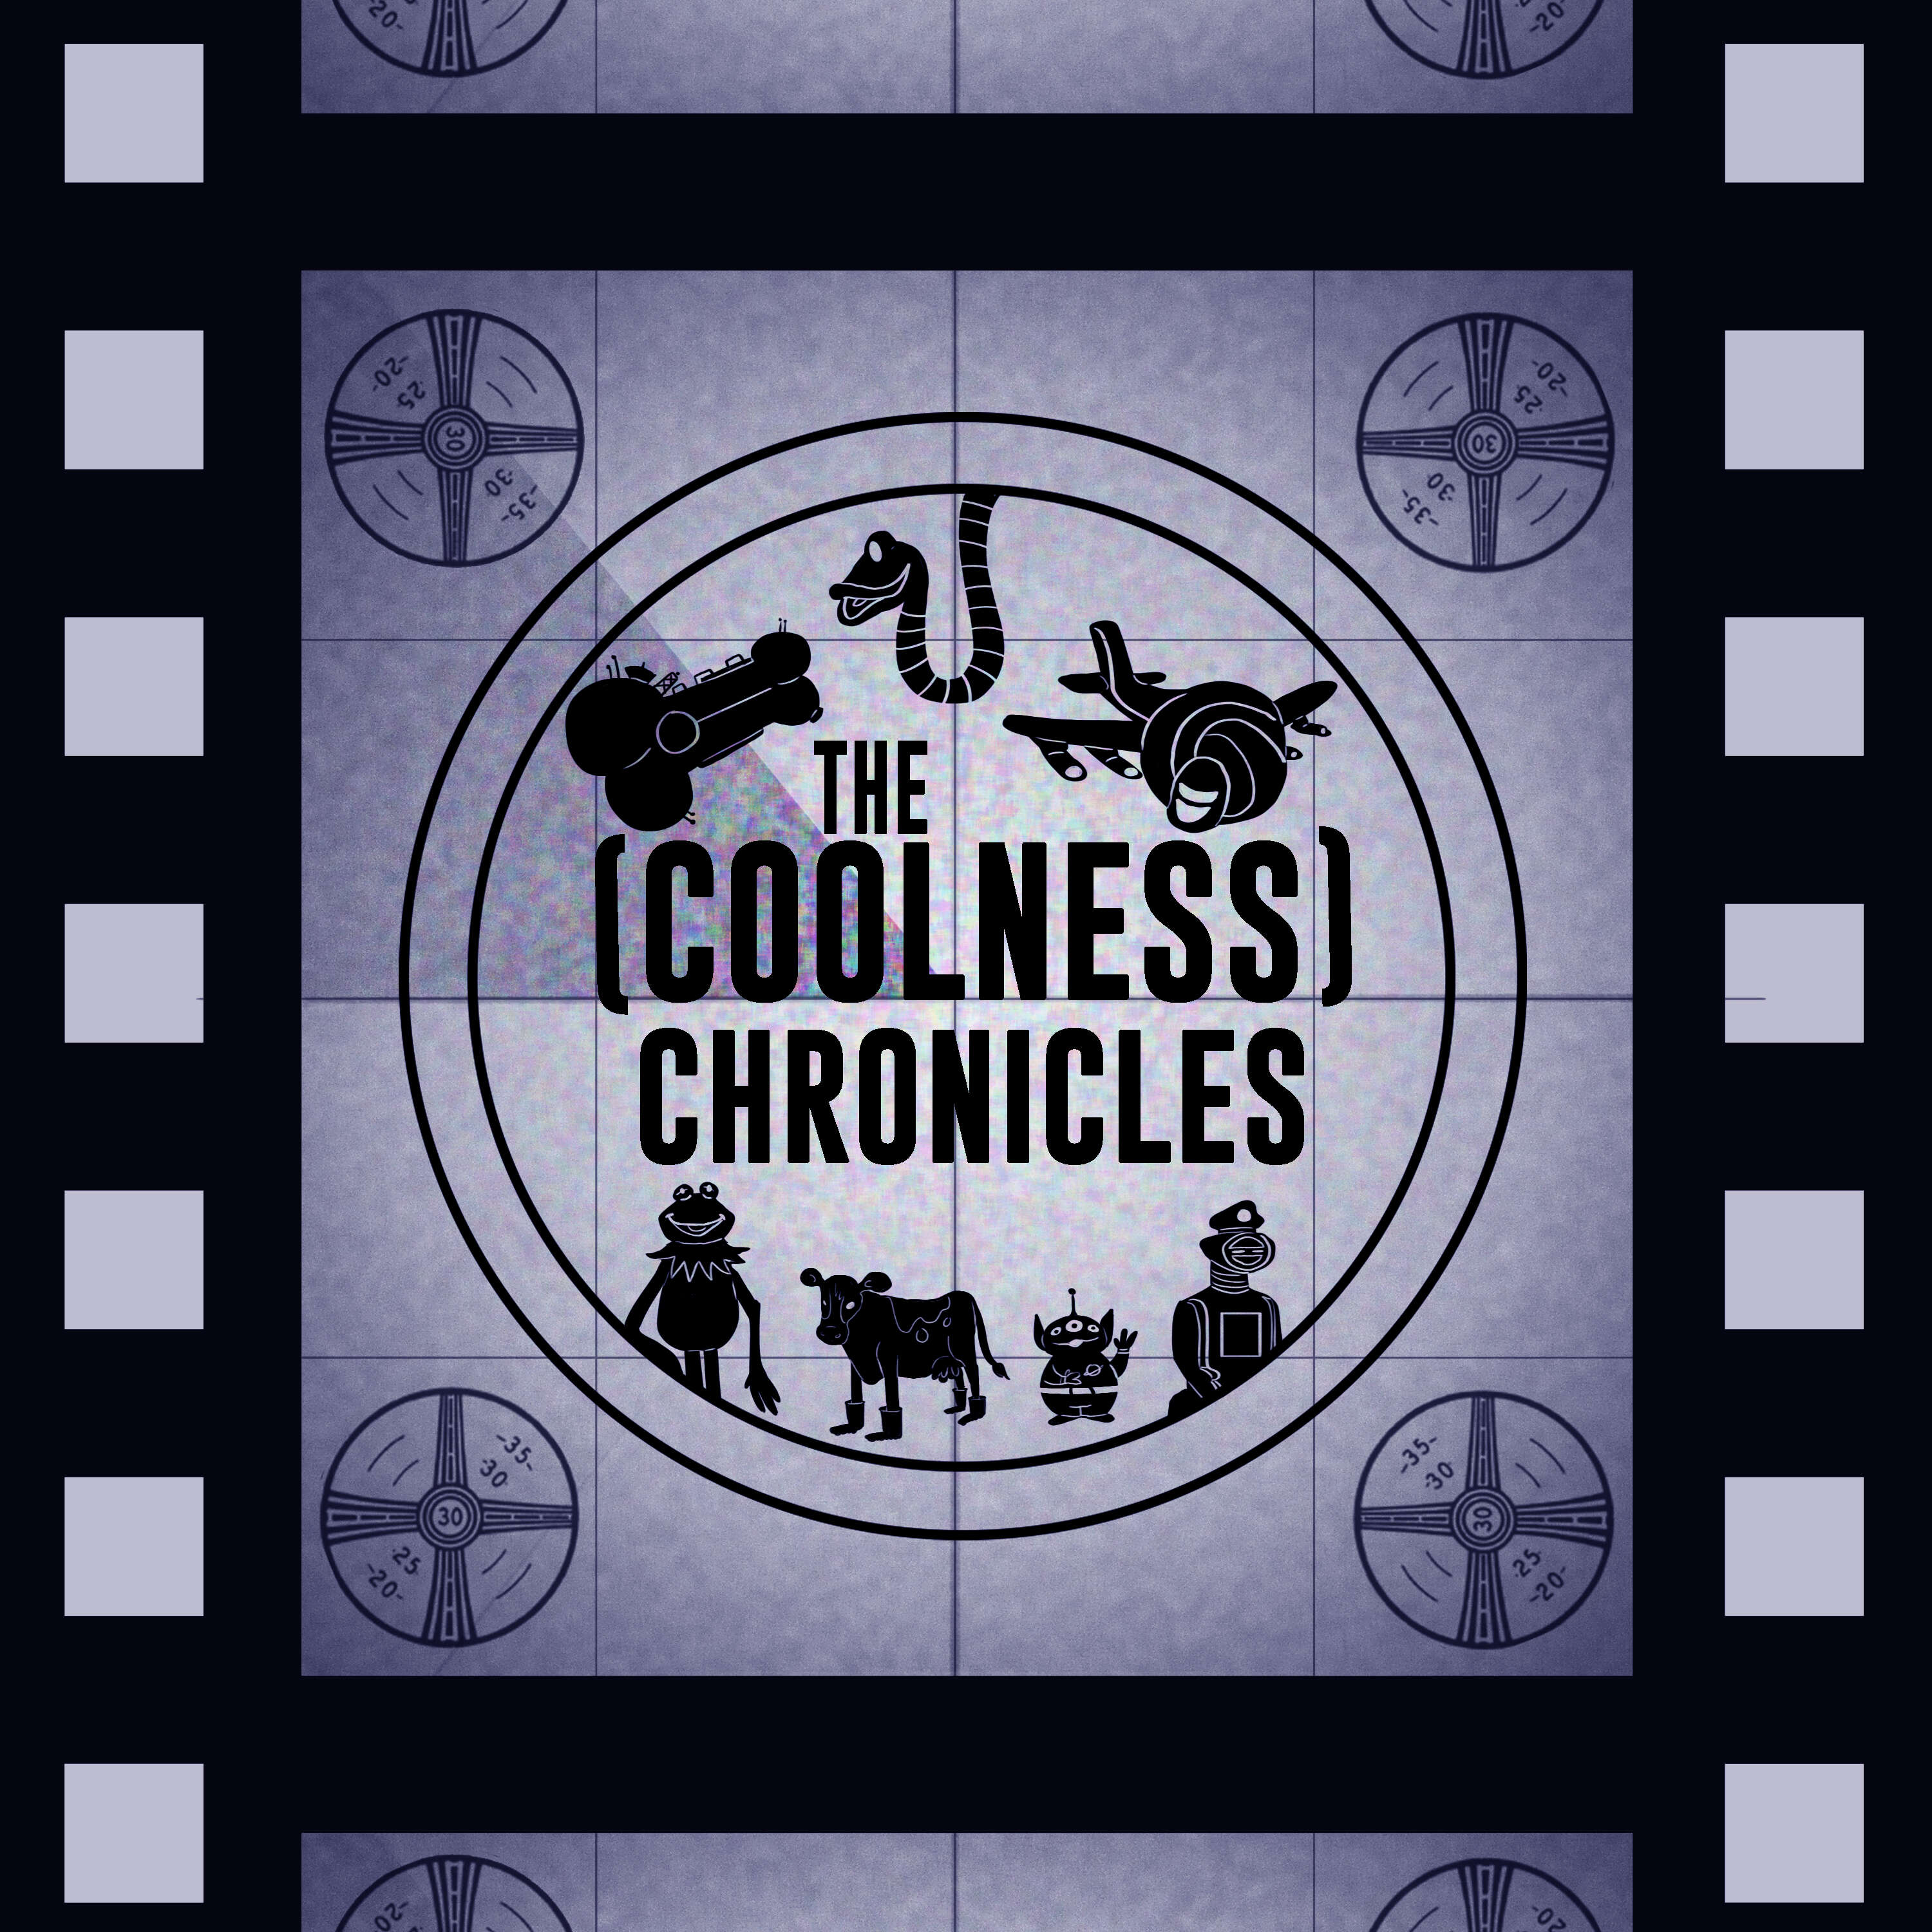 The Coolness Chronicles with Ryan Luis Rodriguez